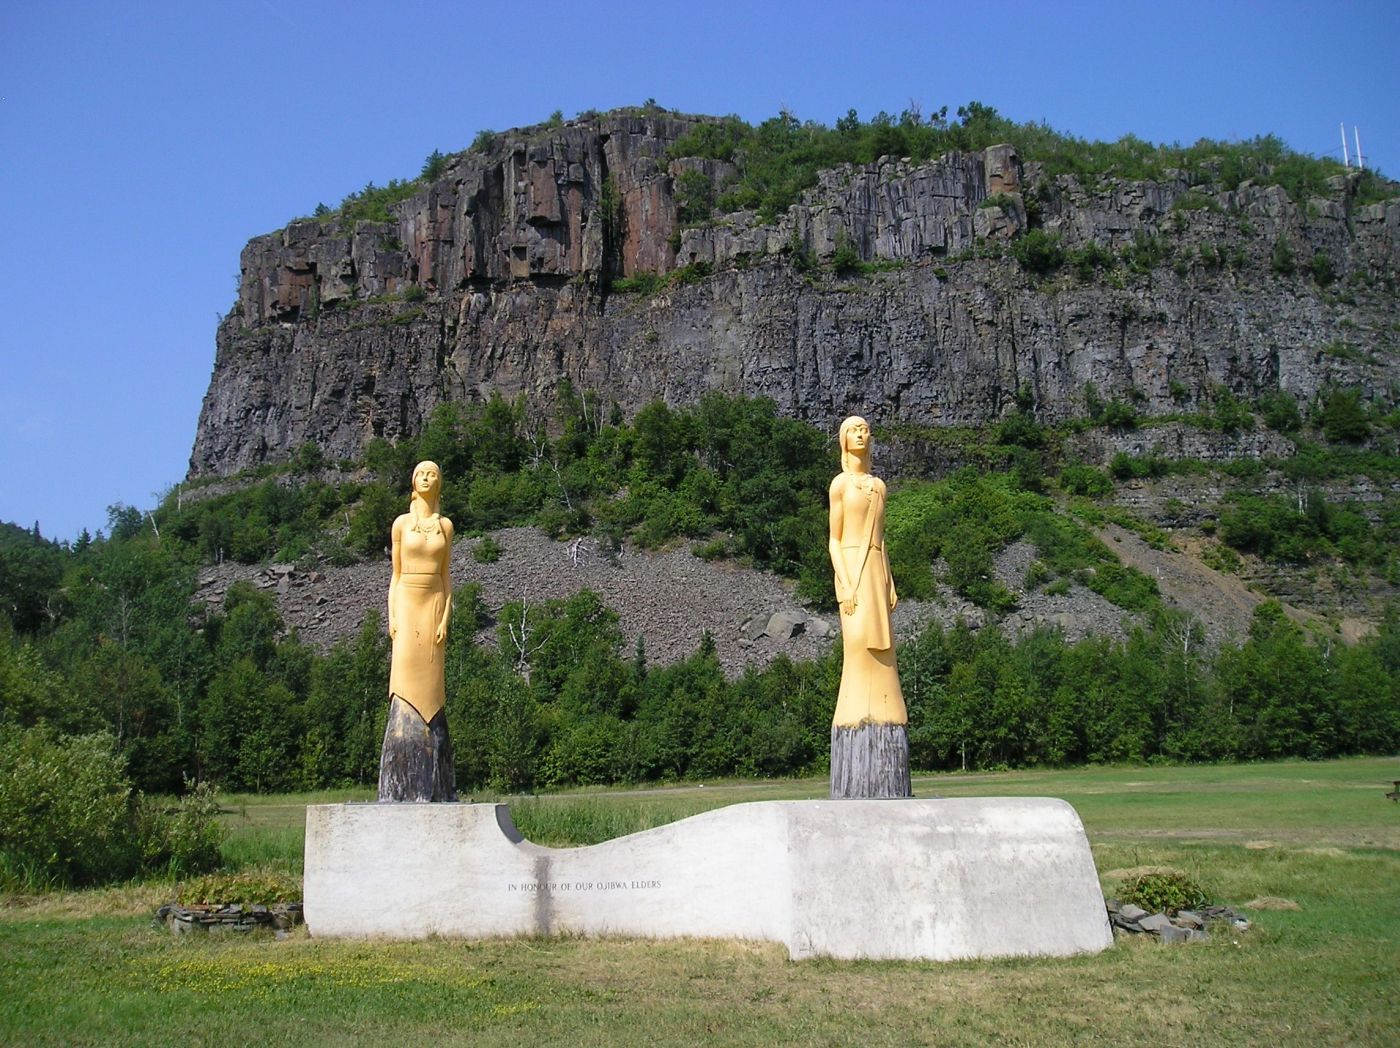 Statues at pow wow grounds at Anemki Wajiw (Mount McKay)